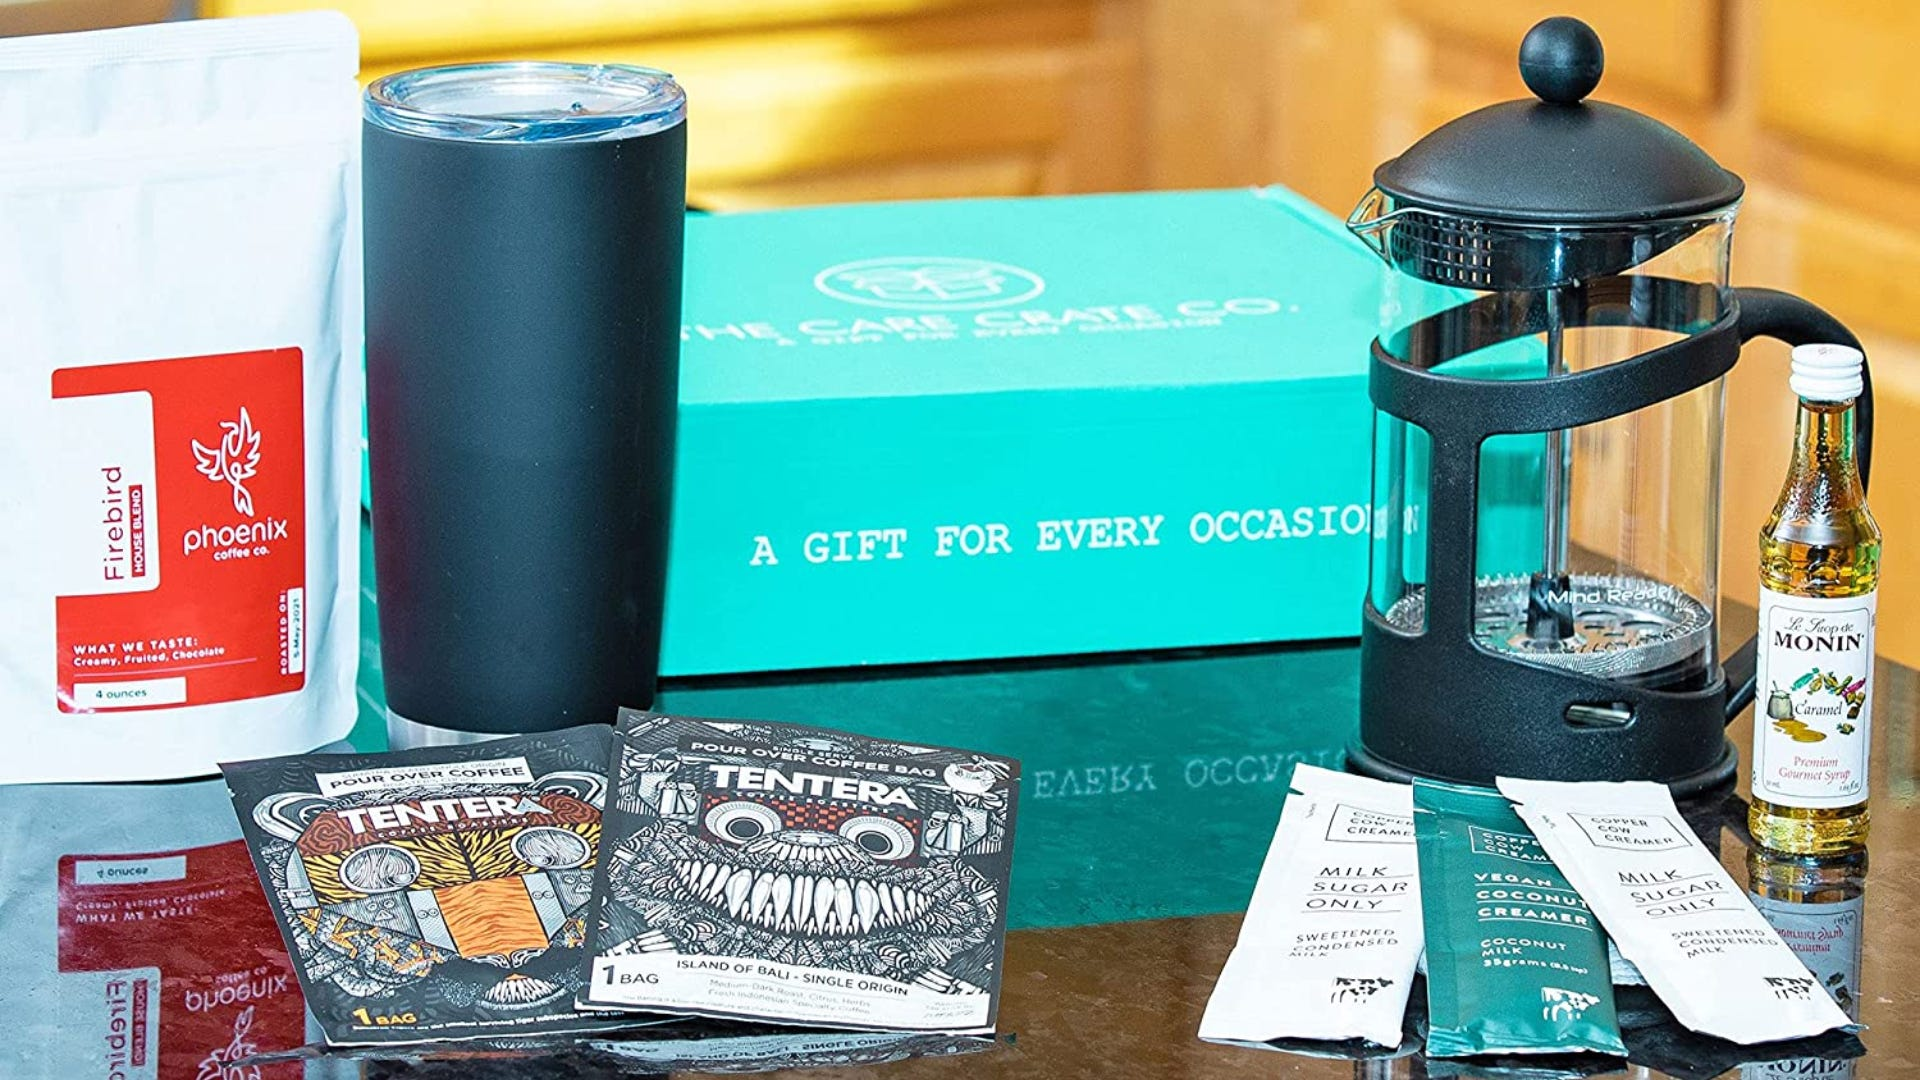 Coffee tools and supplies laid out on a black counter in front of the turquoise box packing.